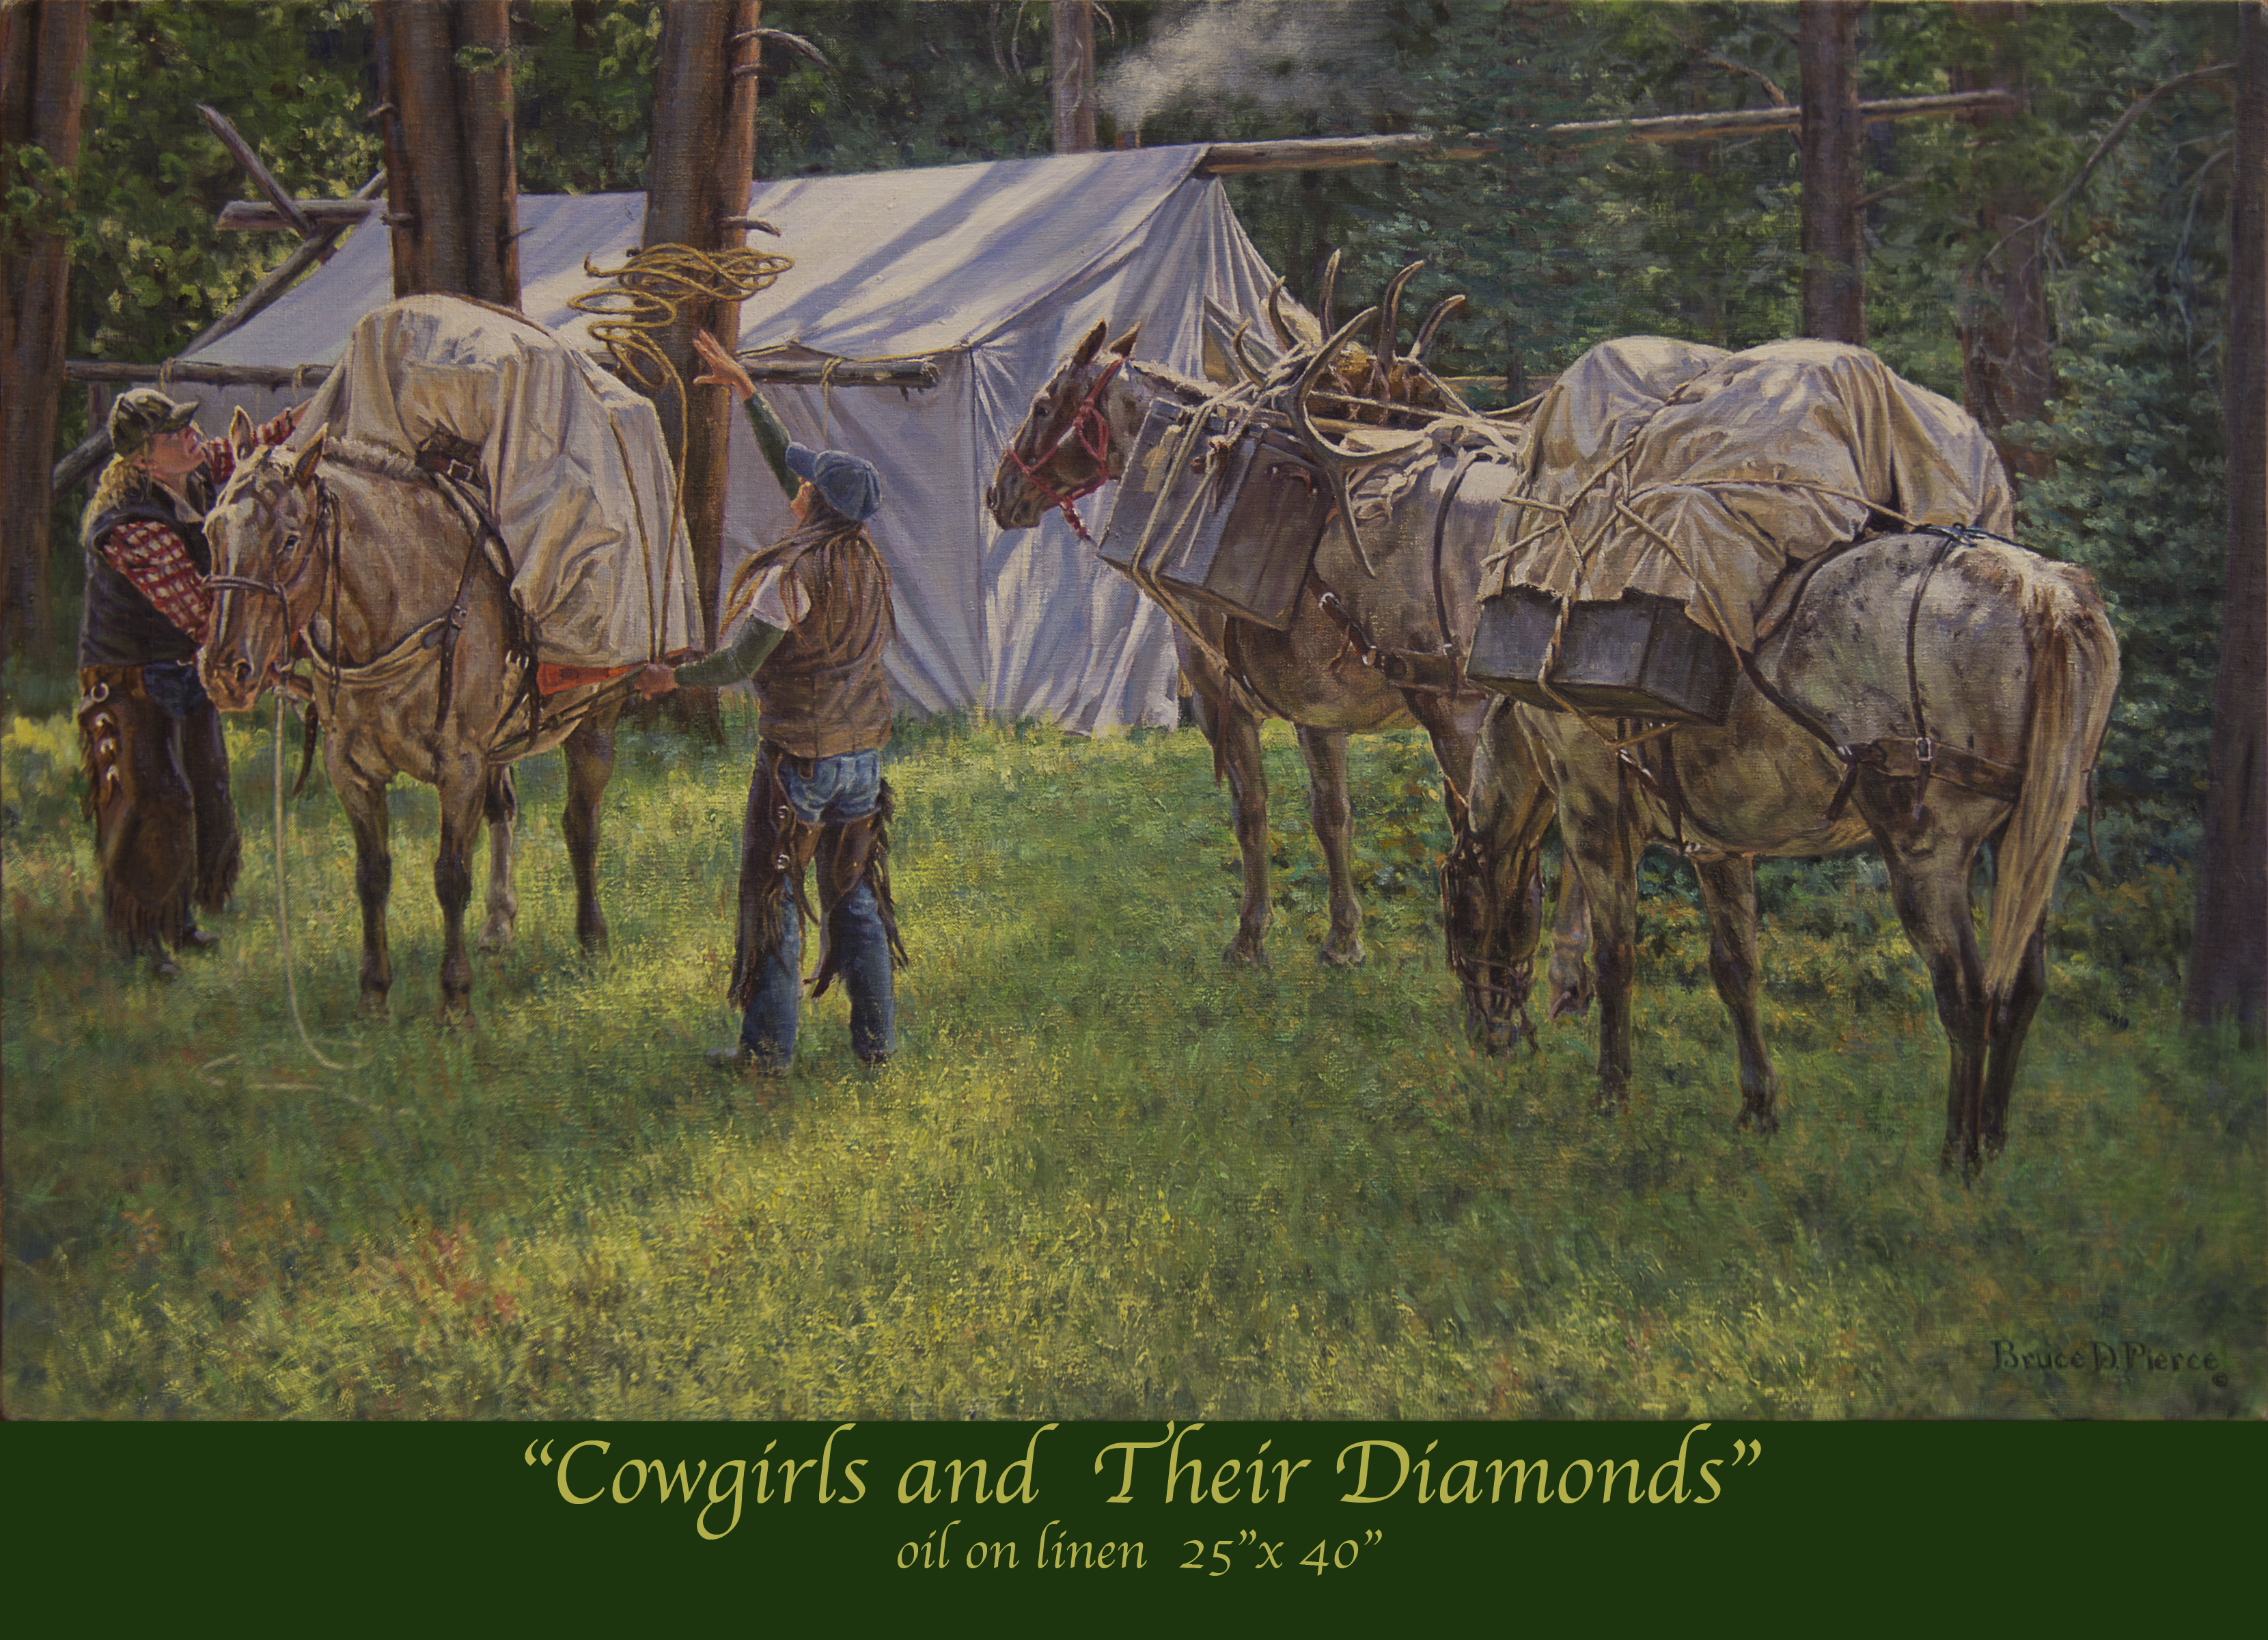 Cowgirls and Their Diamonds